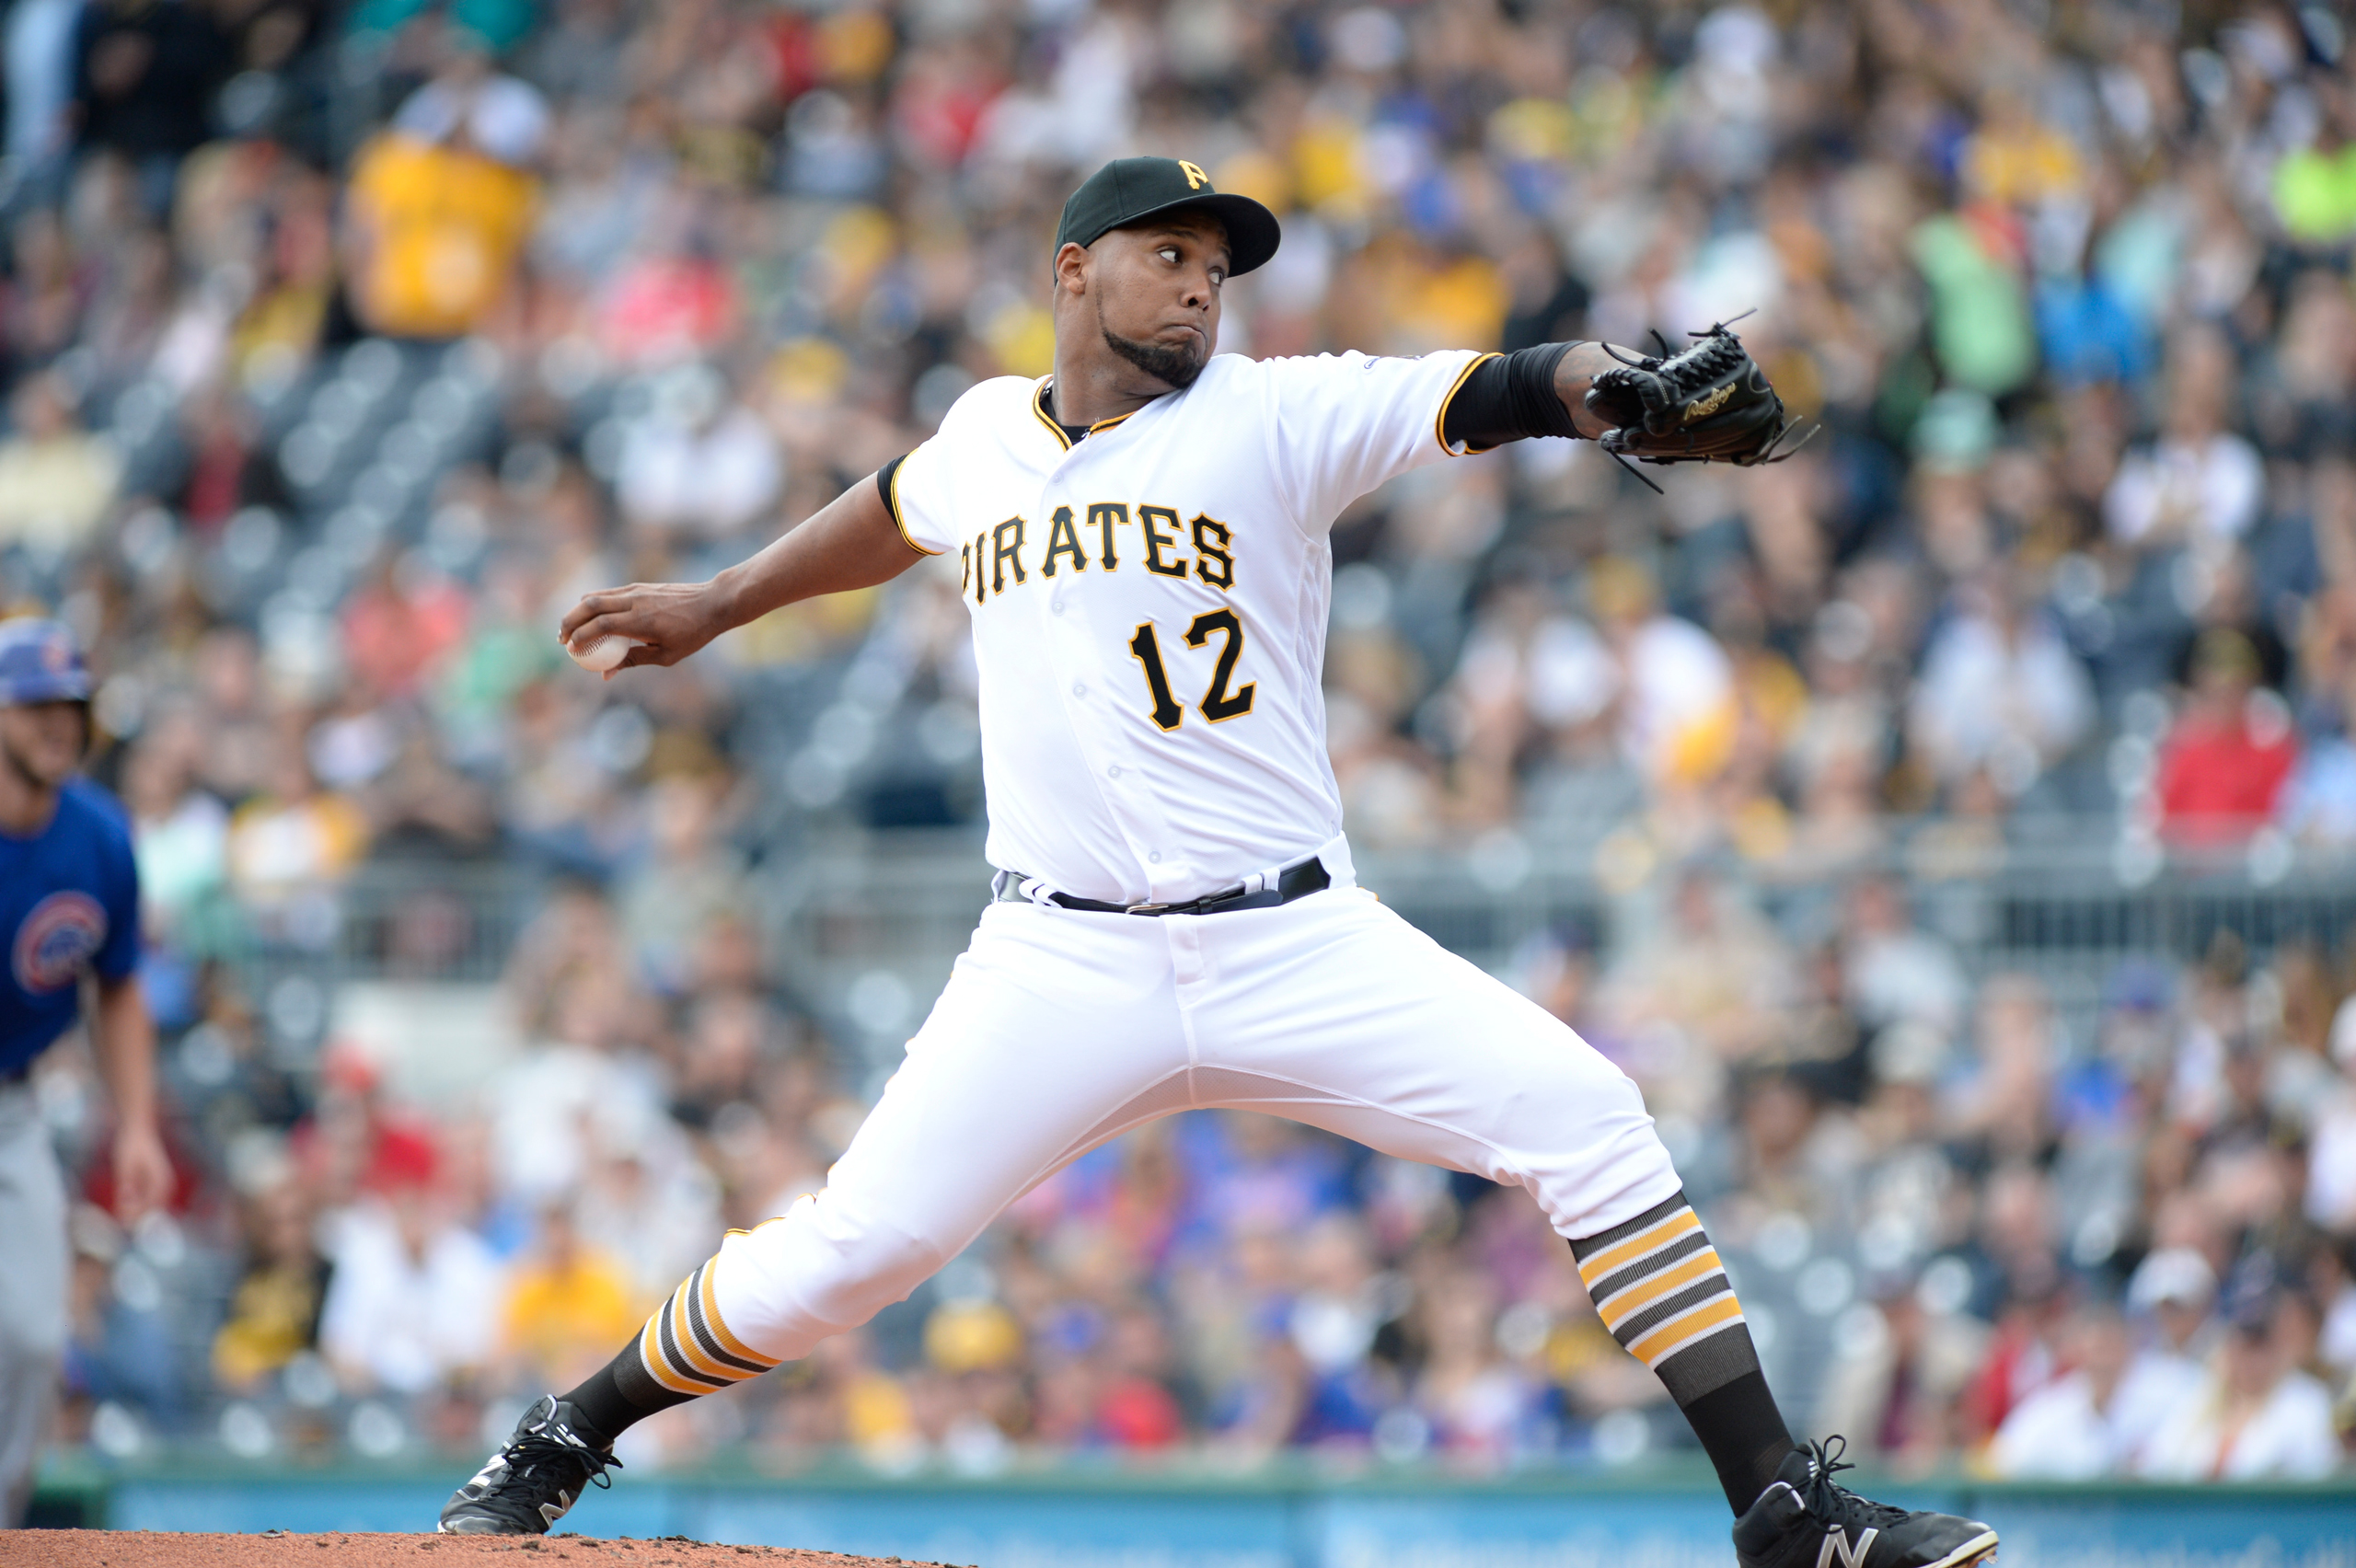 Pittsburgh Pirates starting pitcher Juan Nicasio delivers a pitch during a game versus the Chicago Cubs at PNC Park in Pittsburgh, PA., on May 4, 2016.